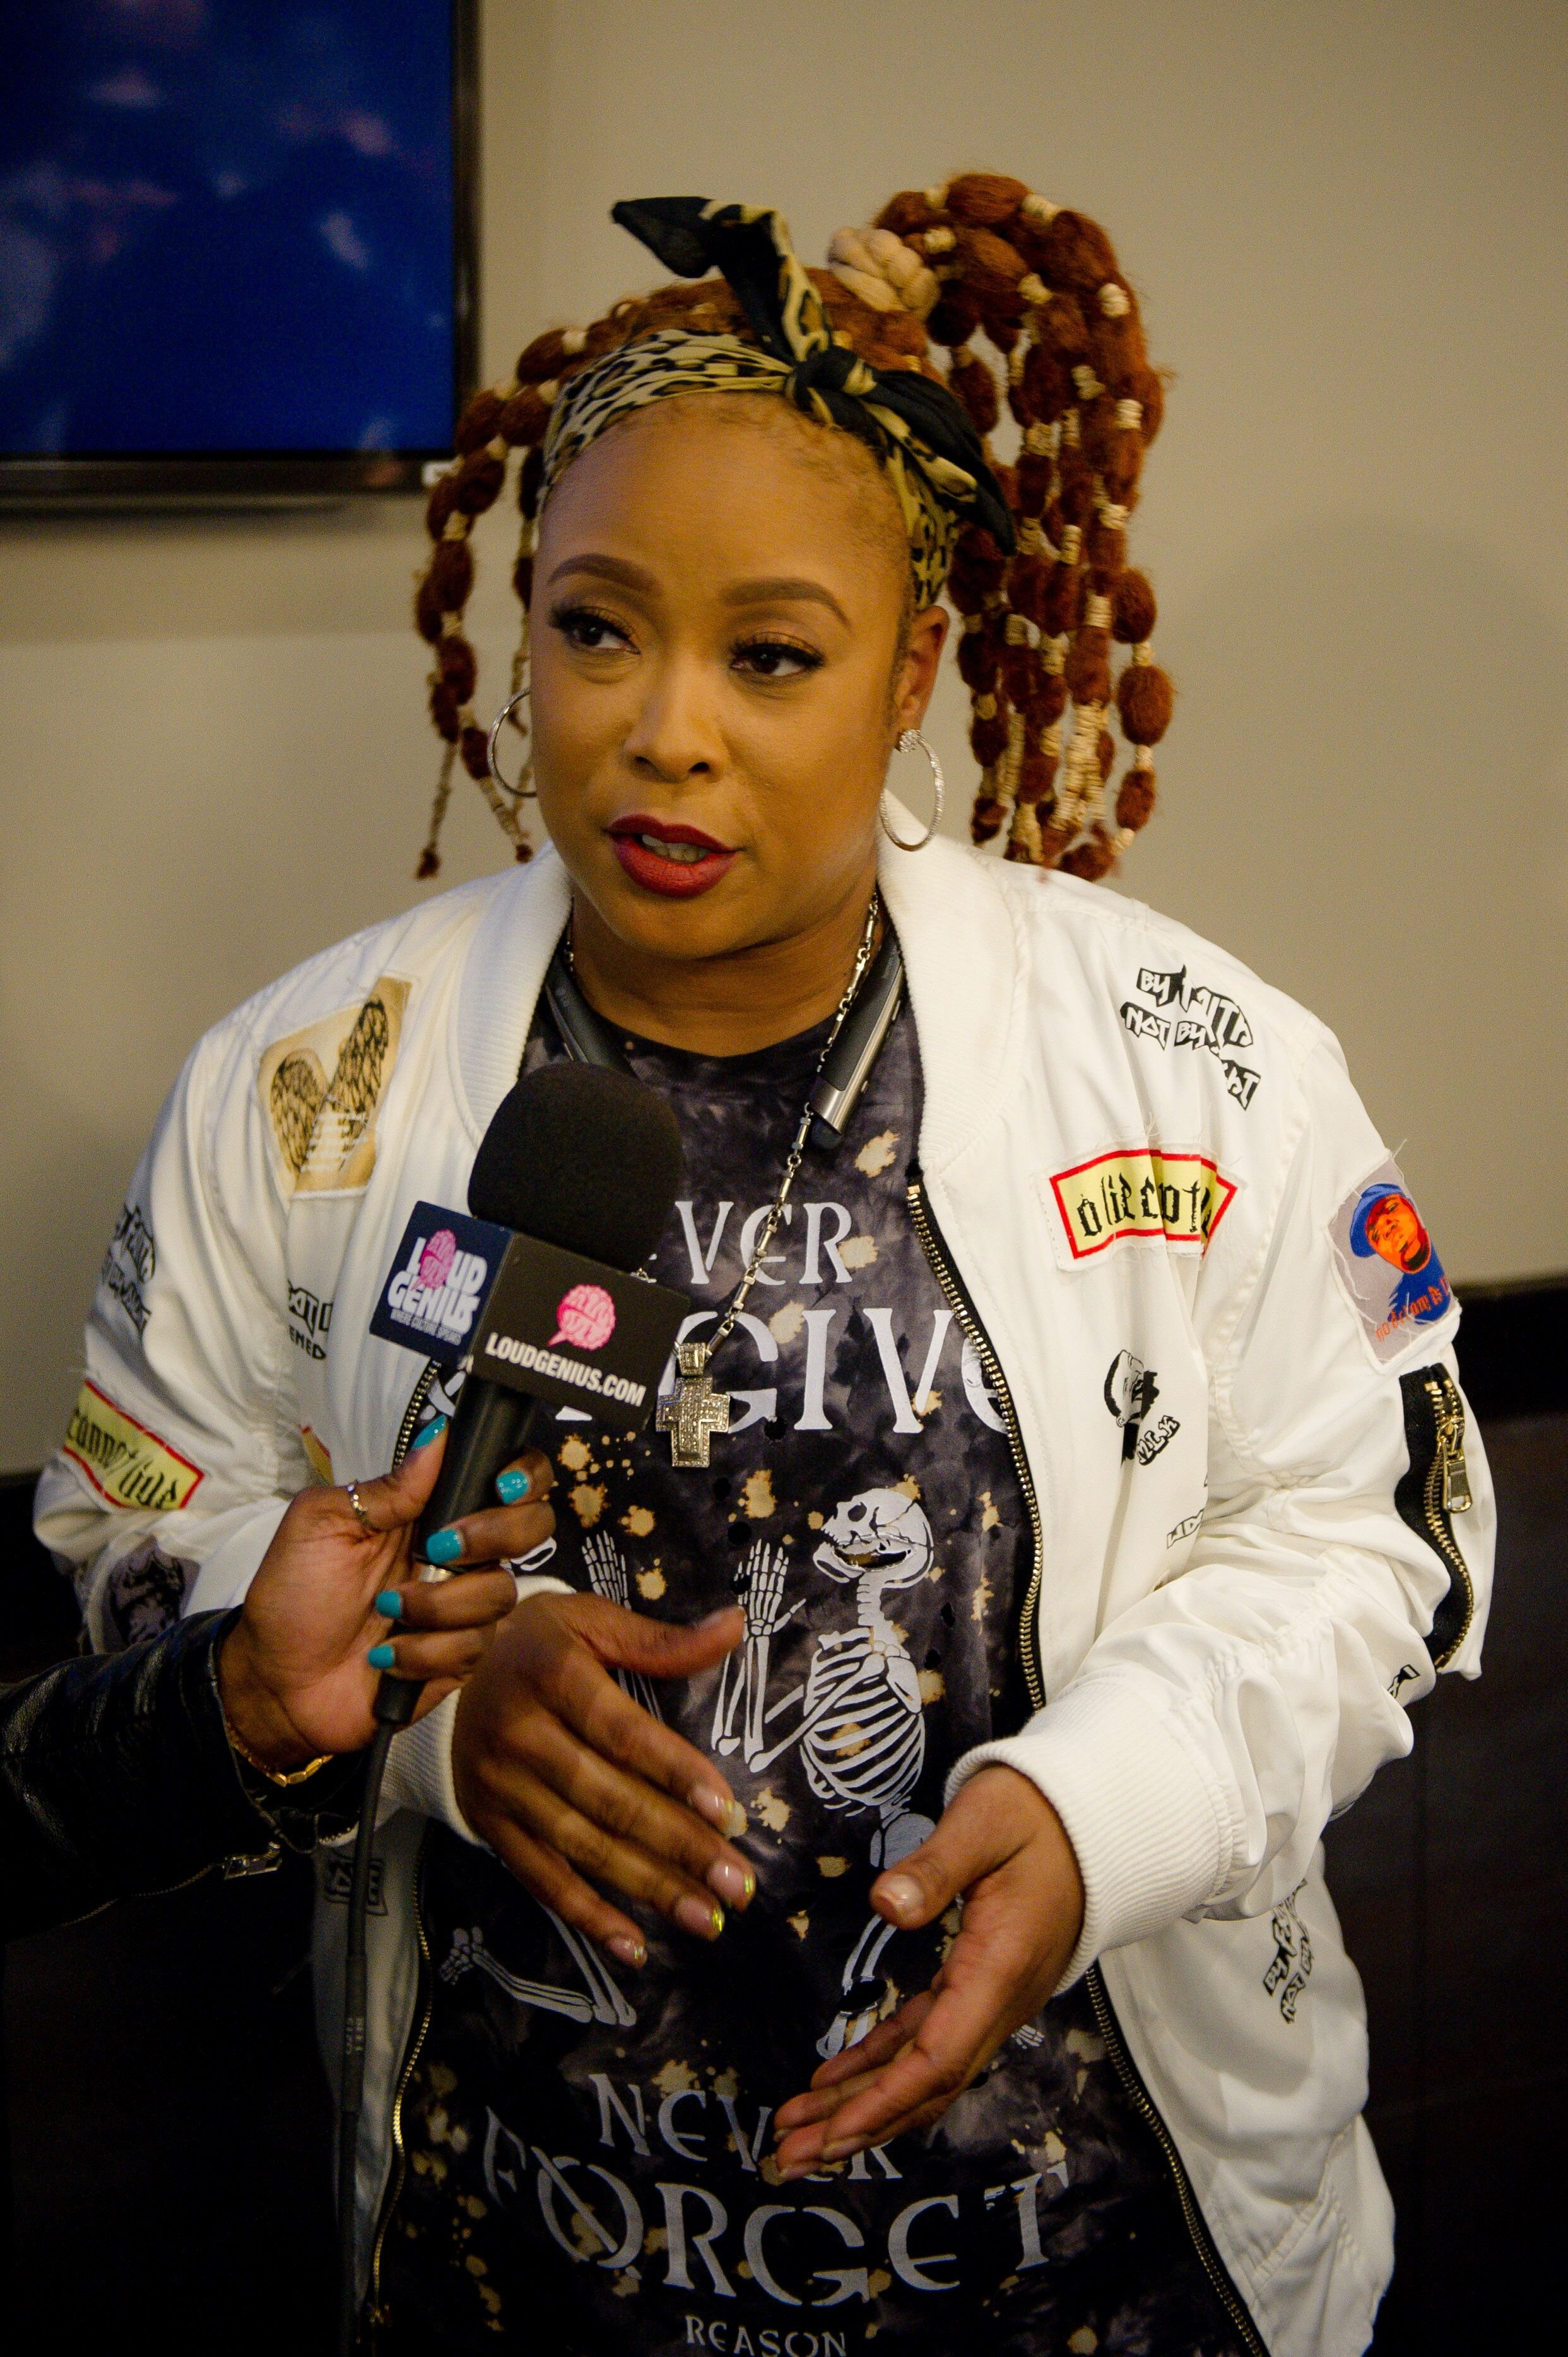 Da Brat attends SoSoSummer17 concert tour press conference at Topgolf Midtown on March 22, 2017 in Atlanta, Georgia. | Source: Getty Images